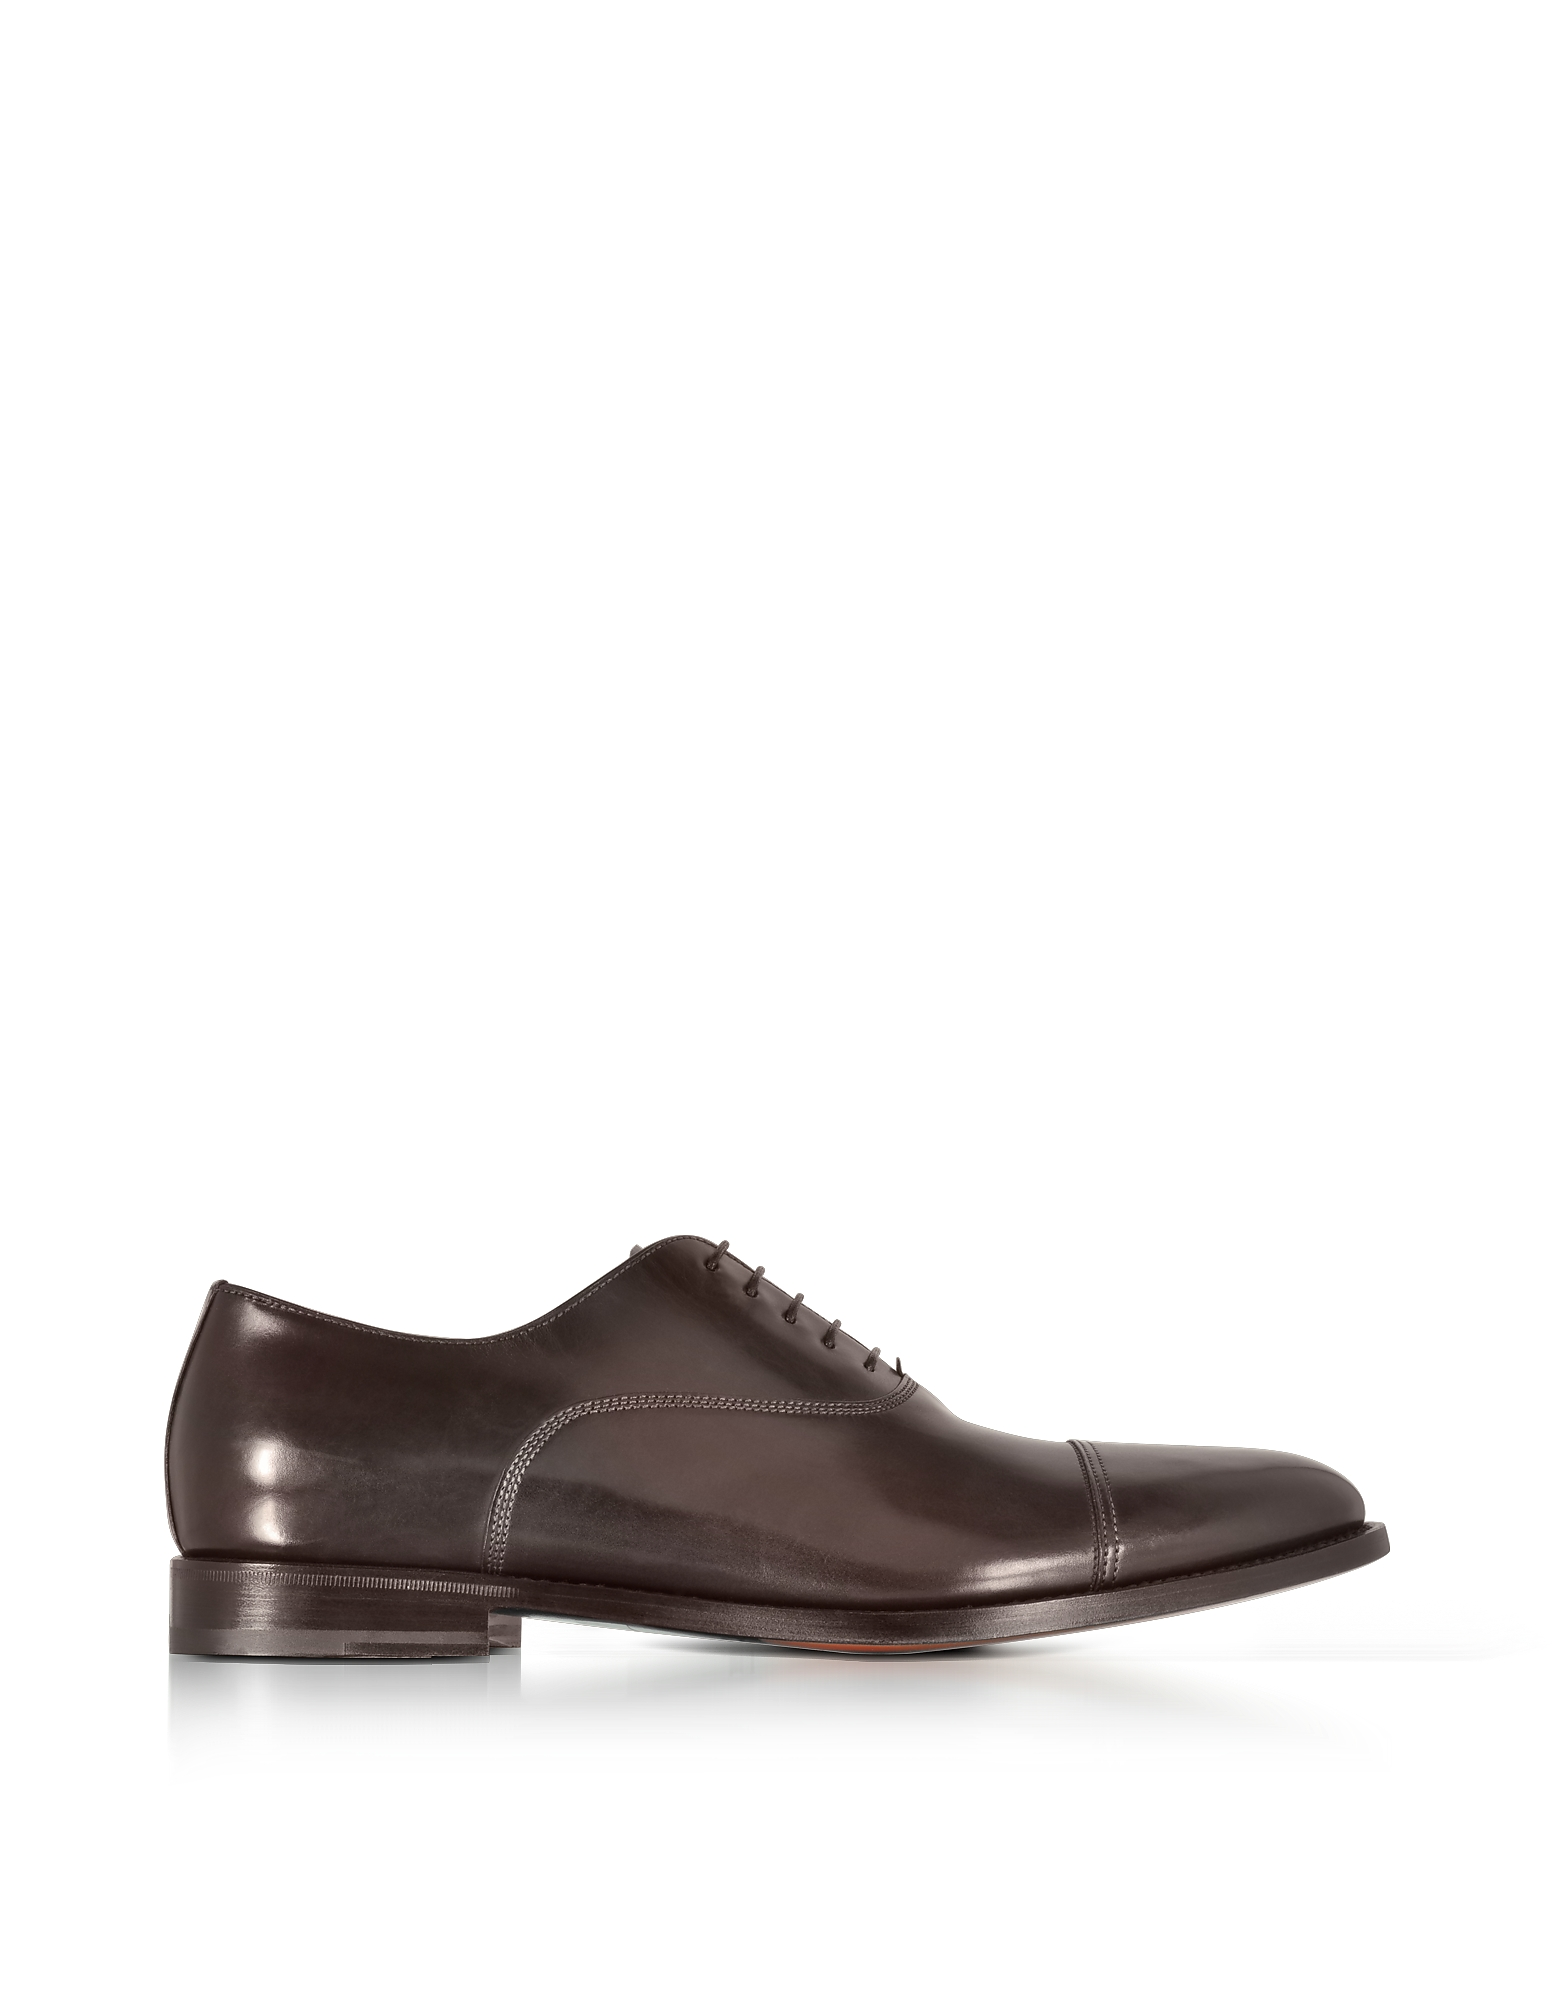 Santoni Shoes, Wilson Dark Brown Leather Oxford Shoes